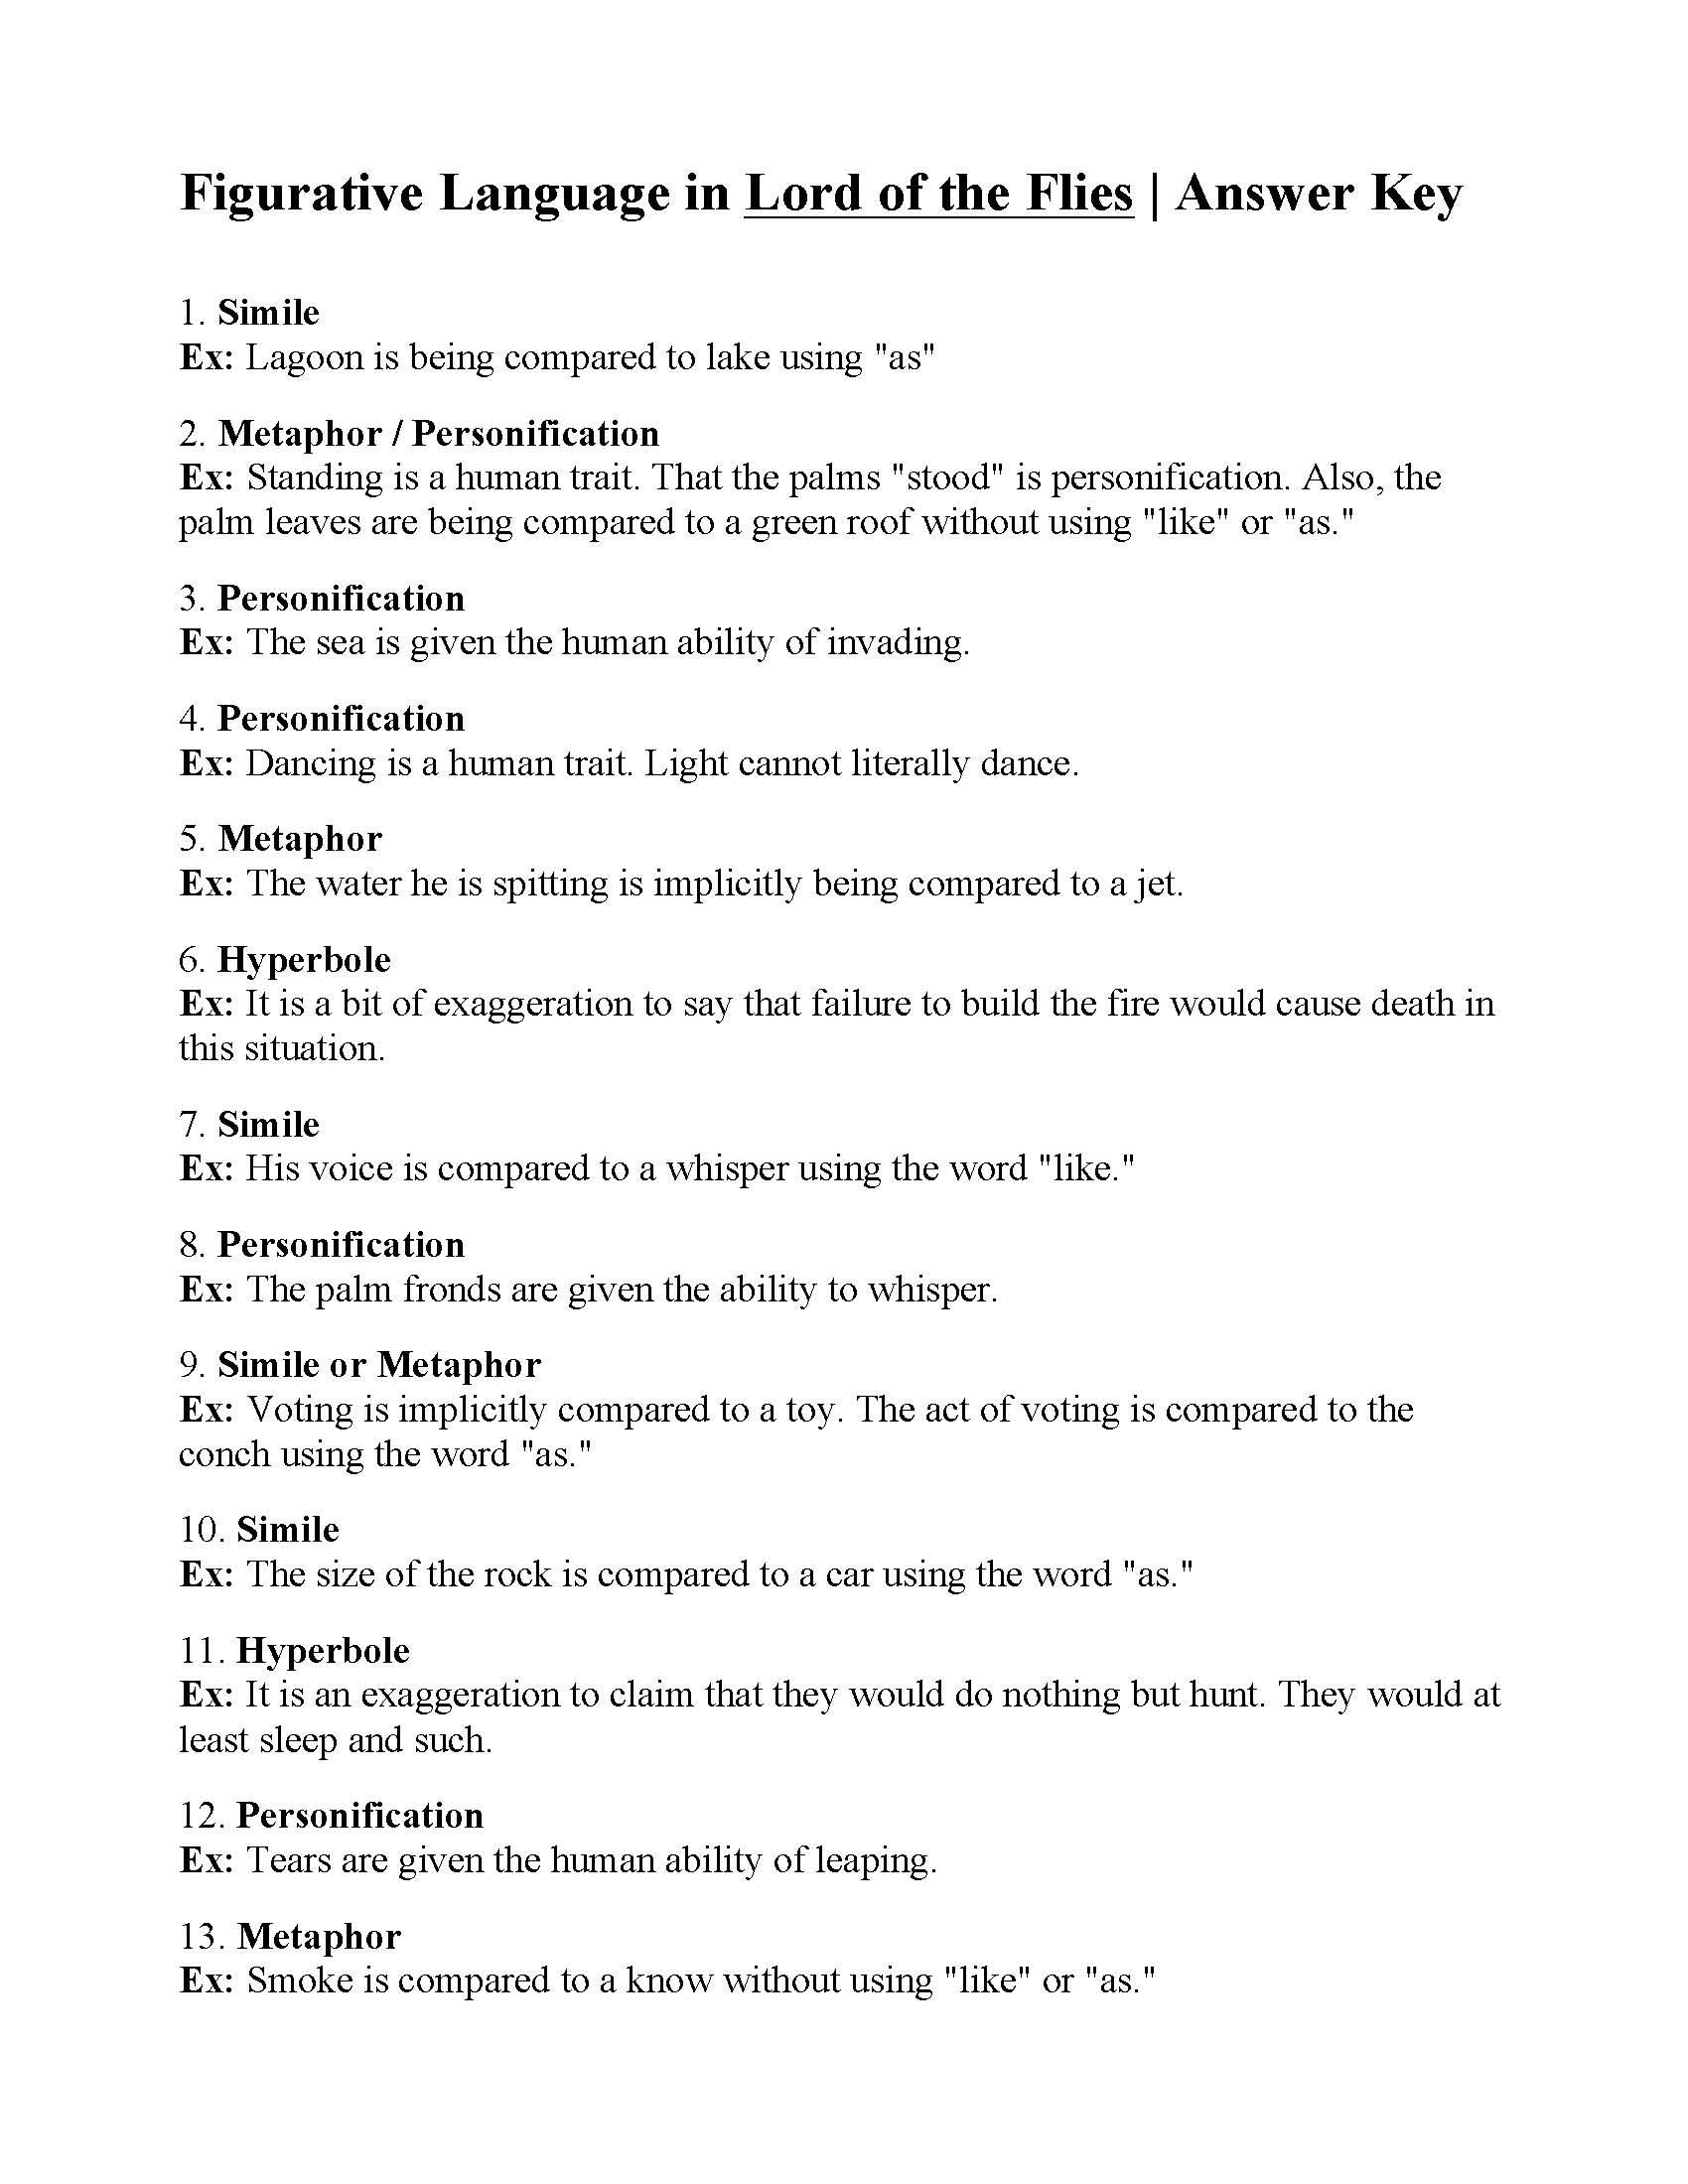 Figurative Language Worksheet - Lord of the Flies | Answers